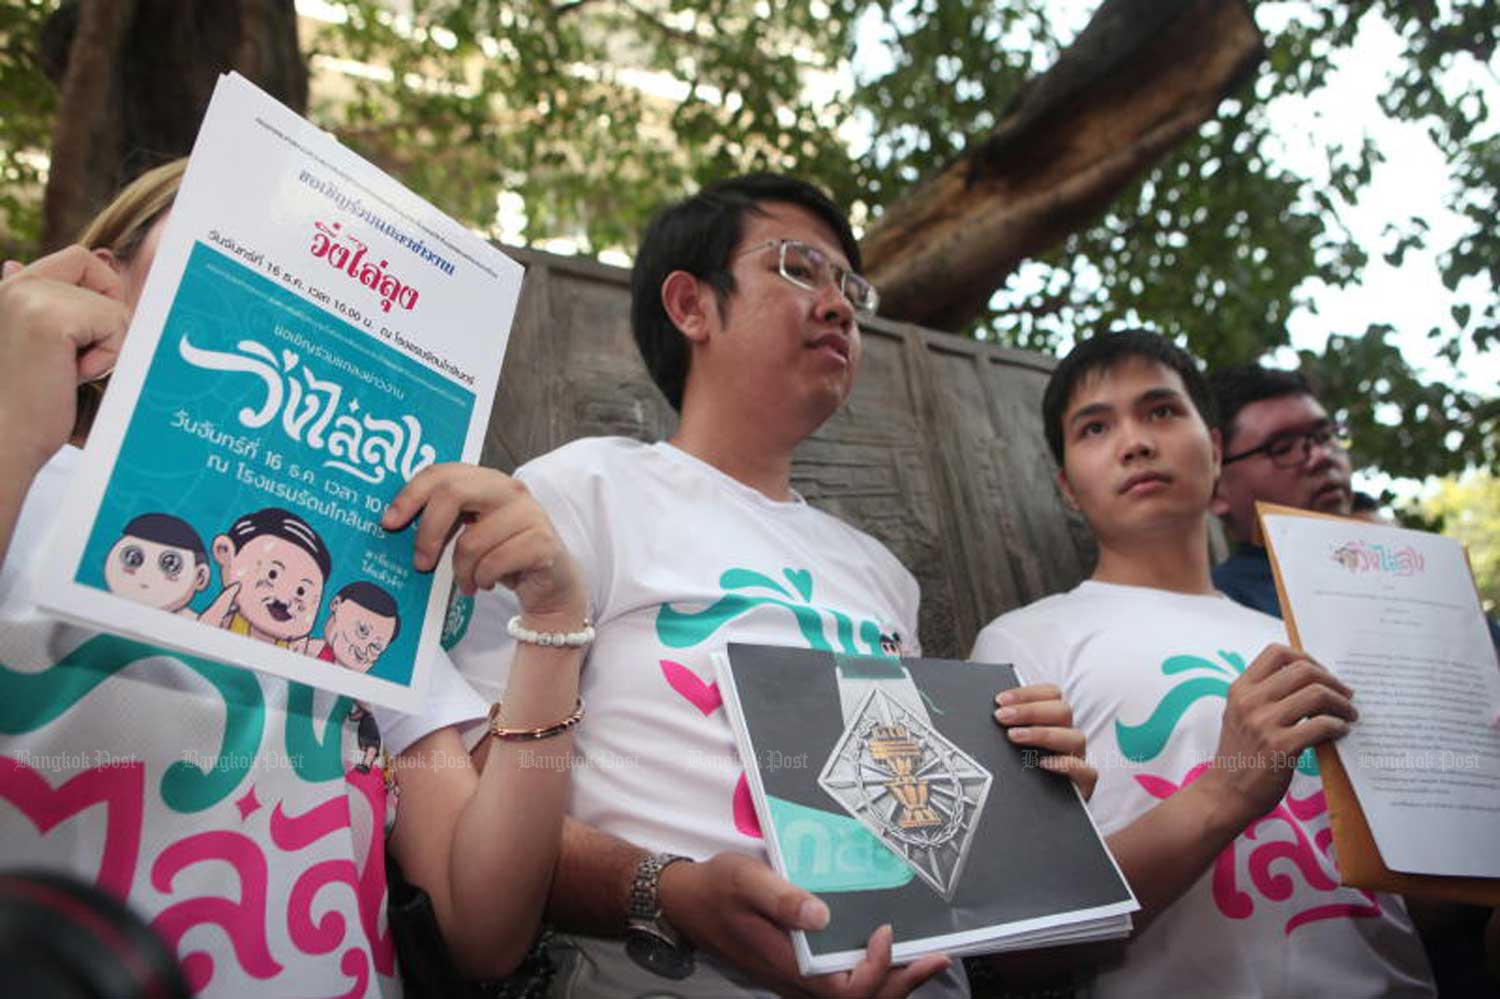 University student Thanawat Wongchai (centre) announces his group's plan to organise the 'Wing Lai Lung' running event, at Thammasat University in Bangkok on Monday. (Photo by Apichart Jinakul)